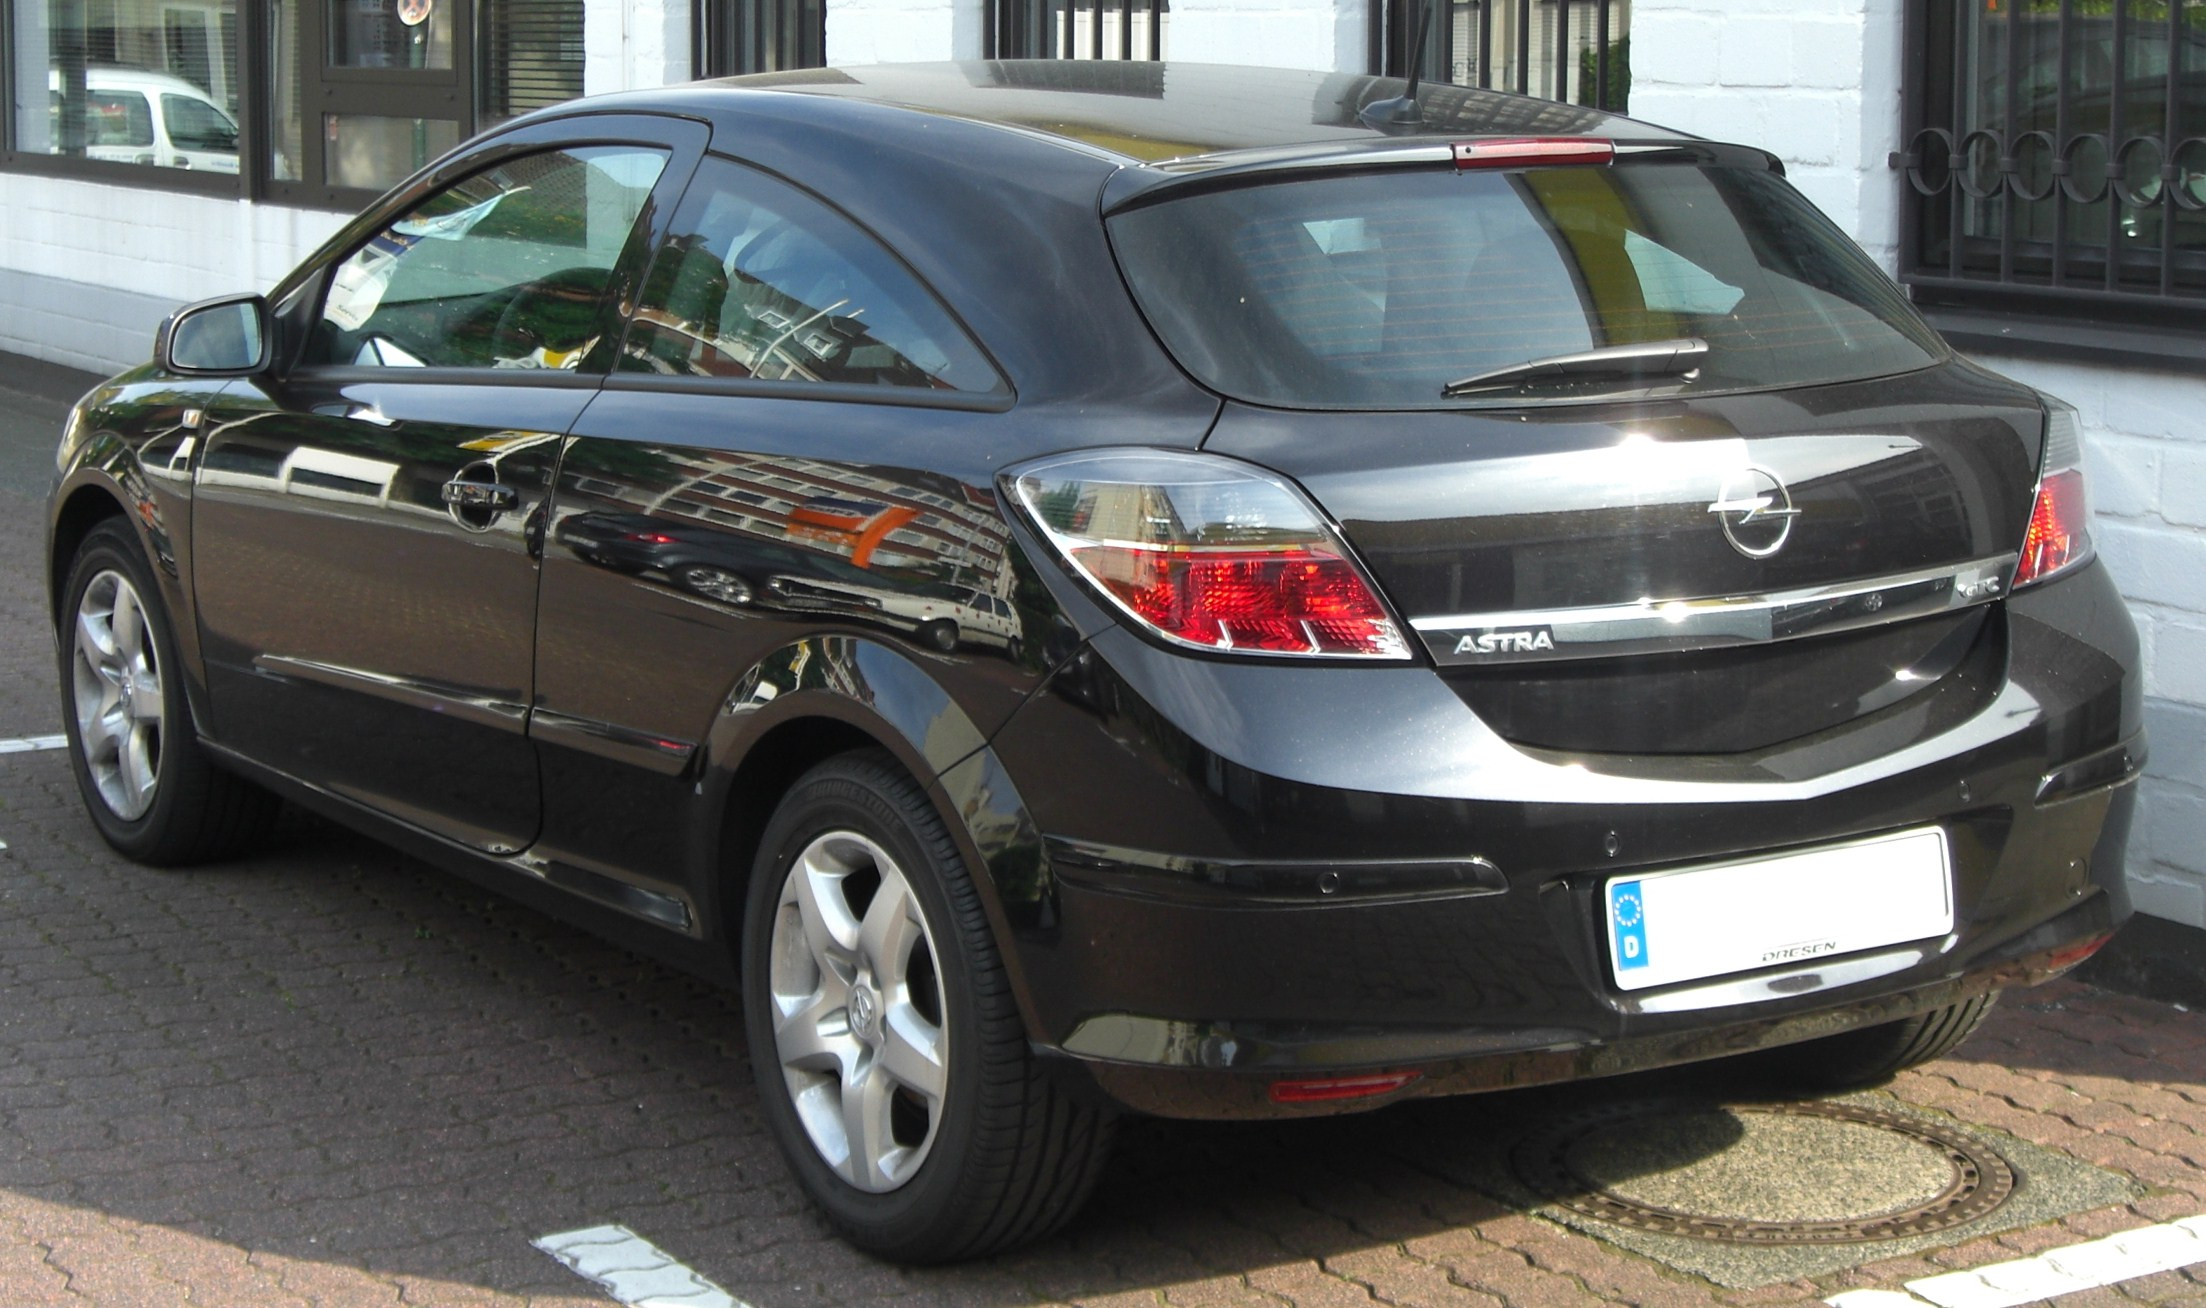 file opel astra gtc facelift rear jpg wikimedia commons. Black Bedroom Furniture Sets. Home Design Ideas